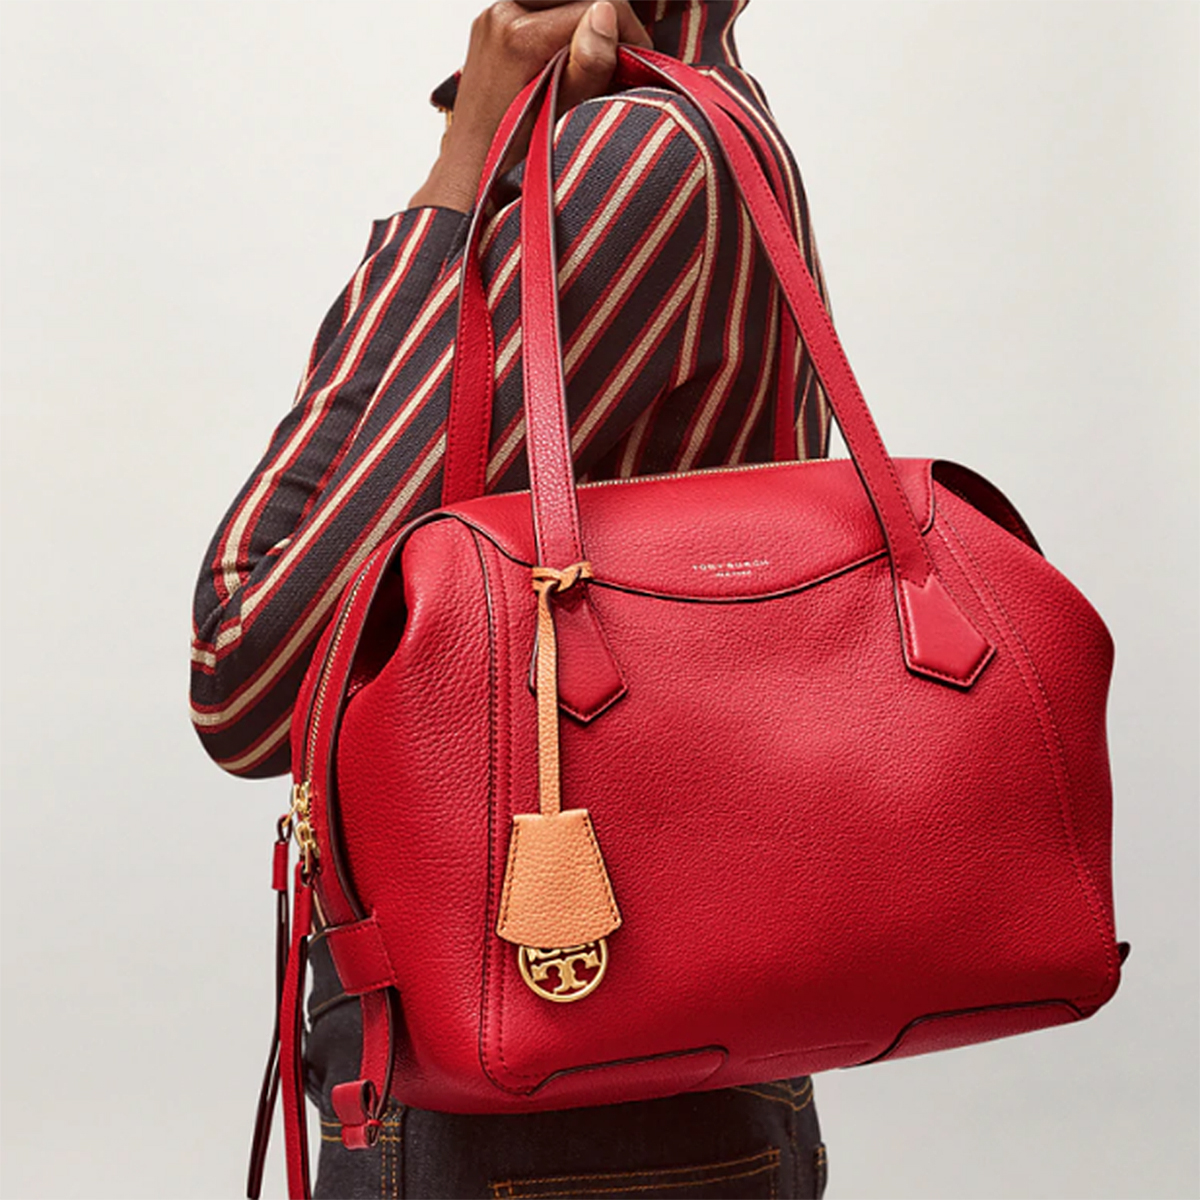 tory-burch-perry-satchel